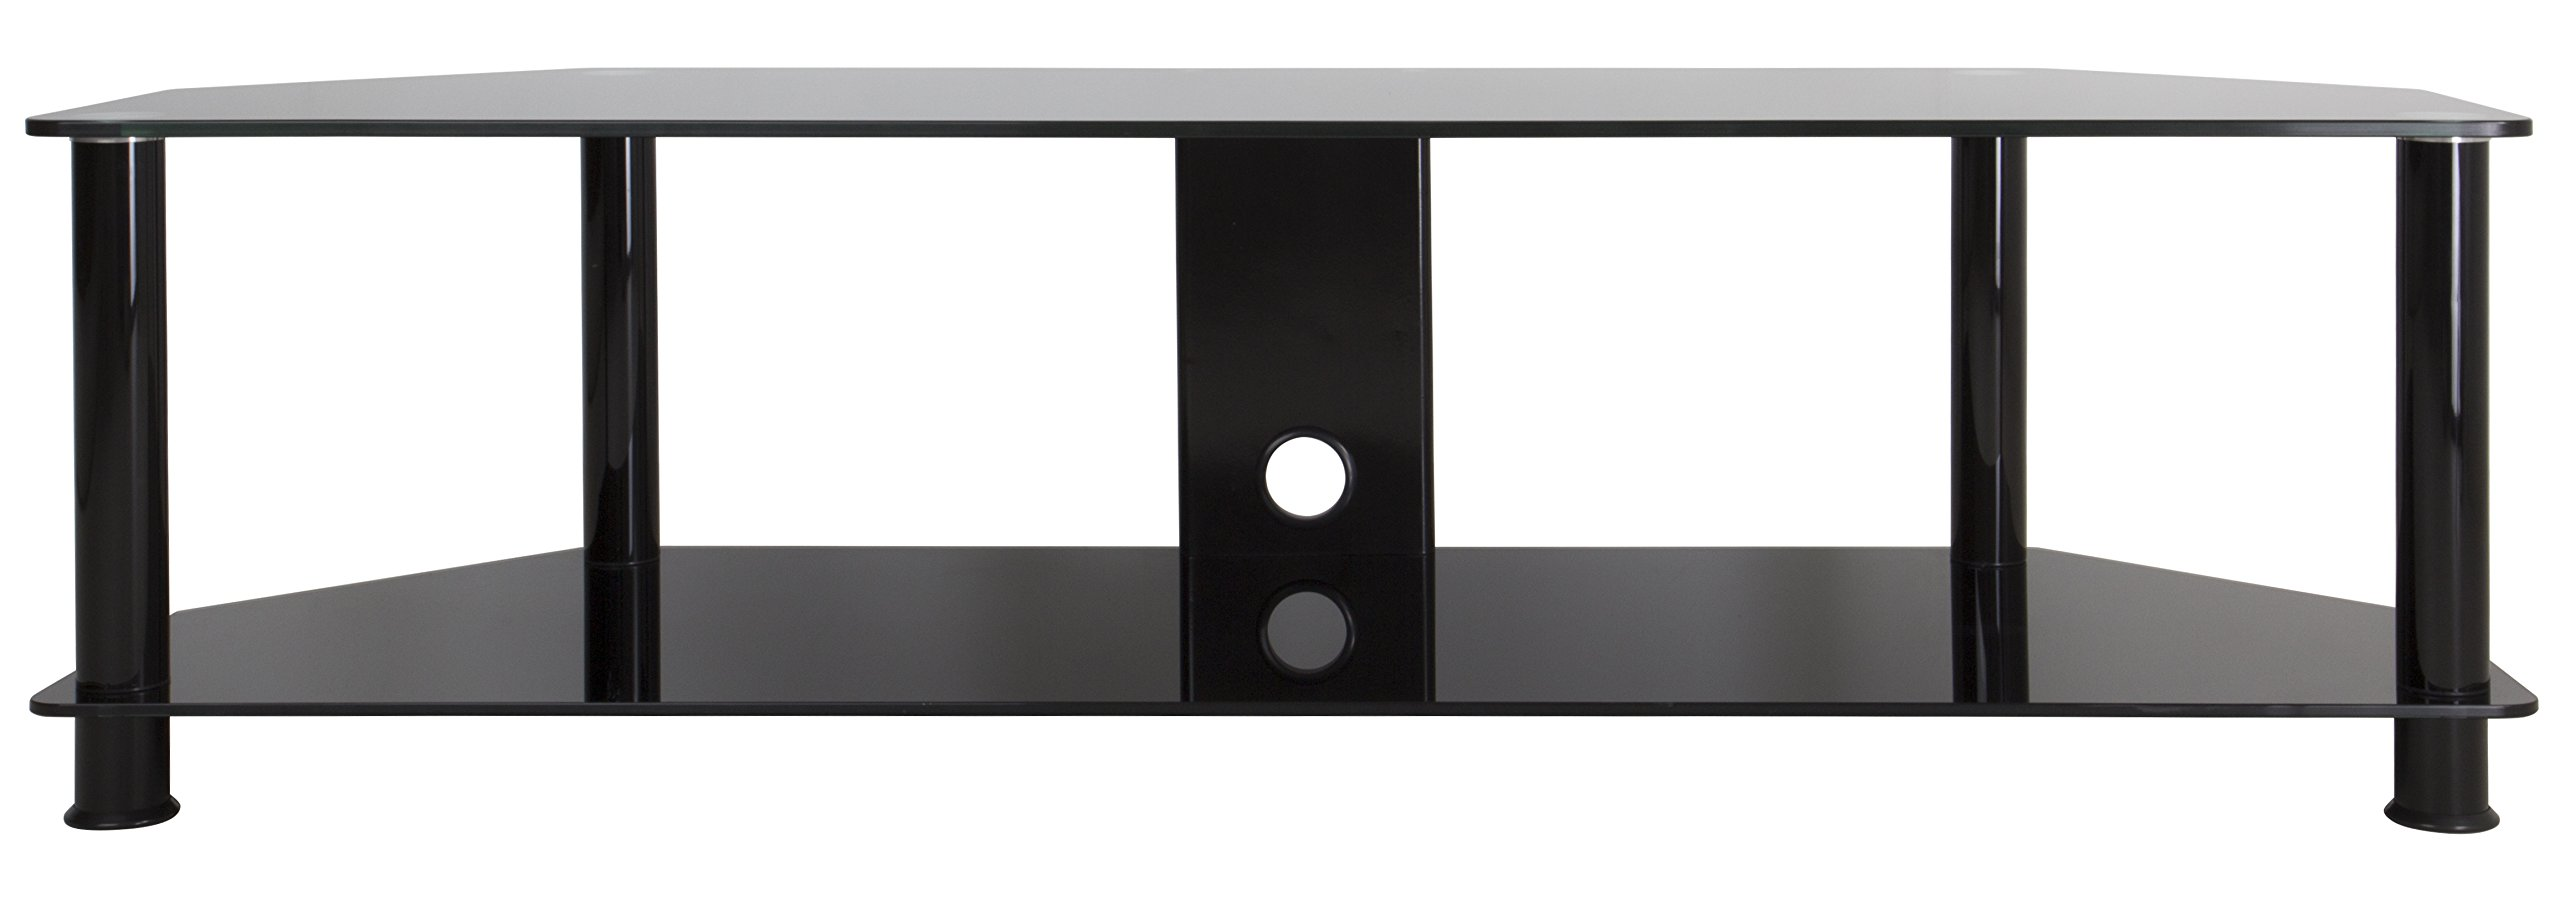 AVF SDC1400CMBB-A TV Stand with Cable Management for up to 65-inch TVs, Black Glass, Black Legs by AVF